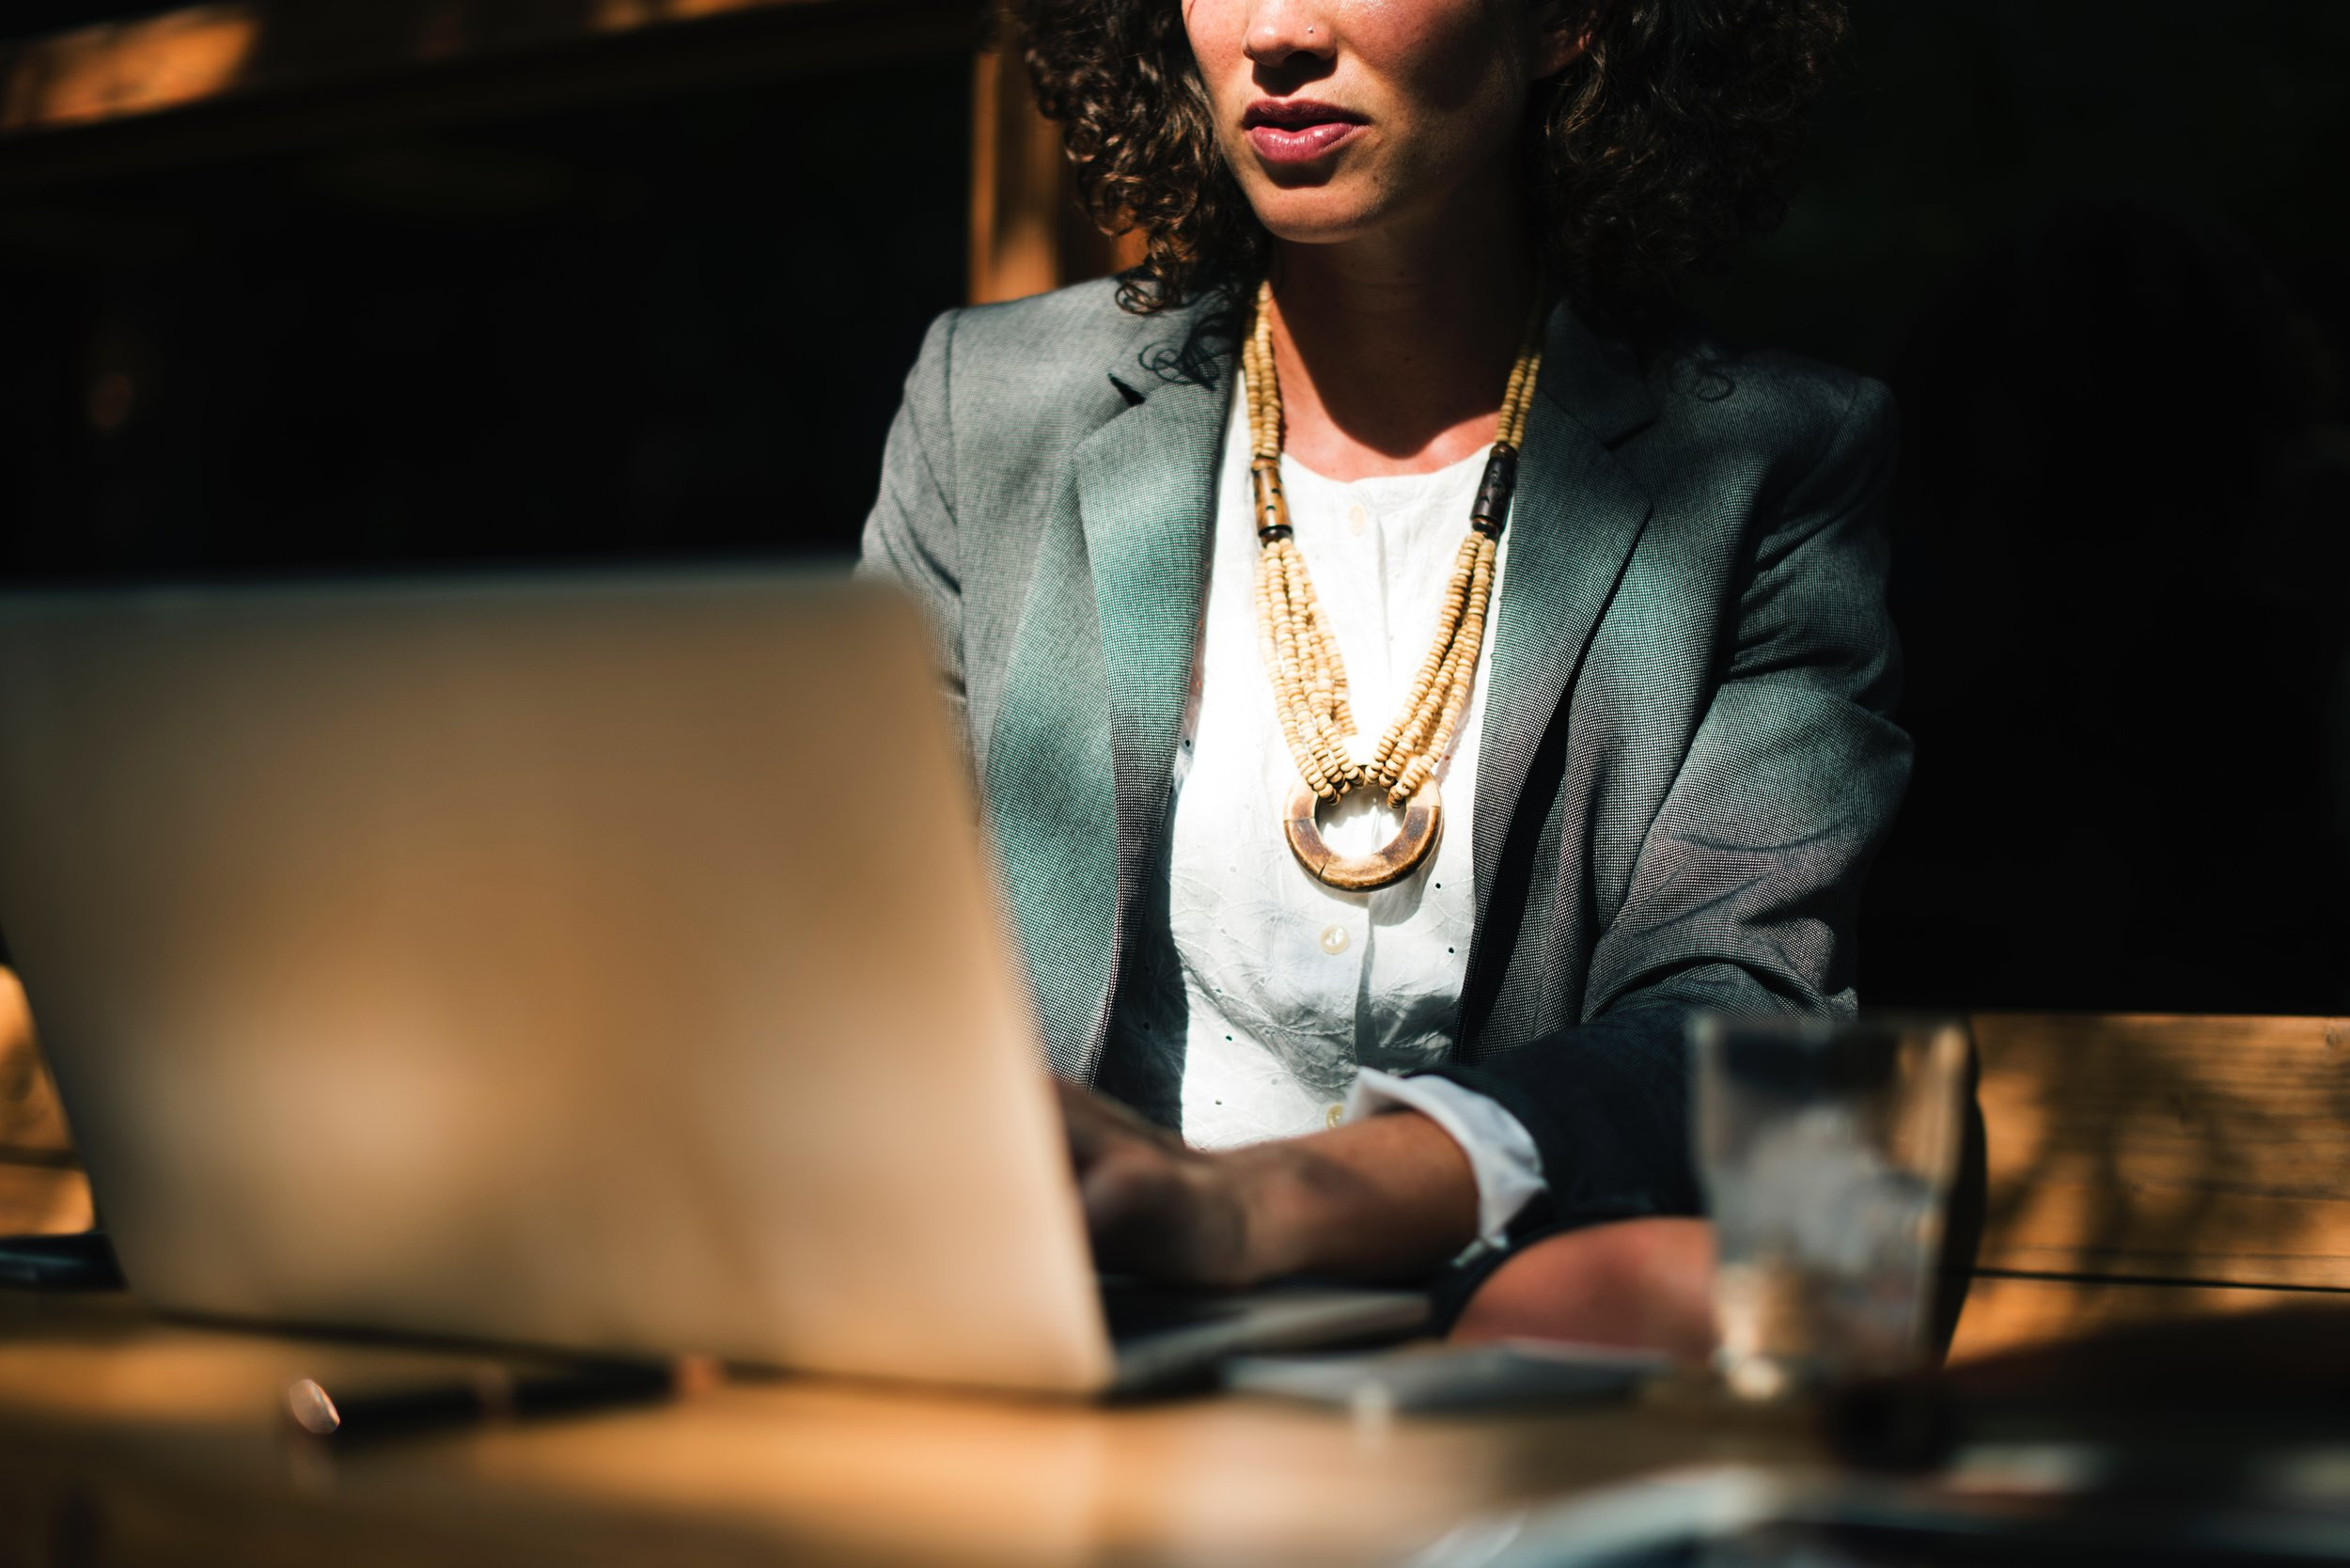 Entry-level women are 18% less likely to be promoted than their male peers* -